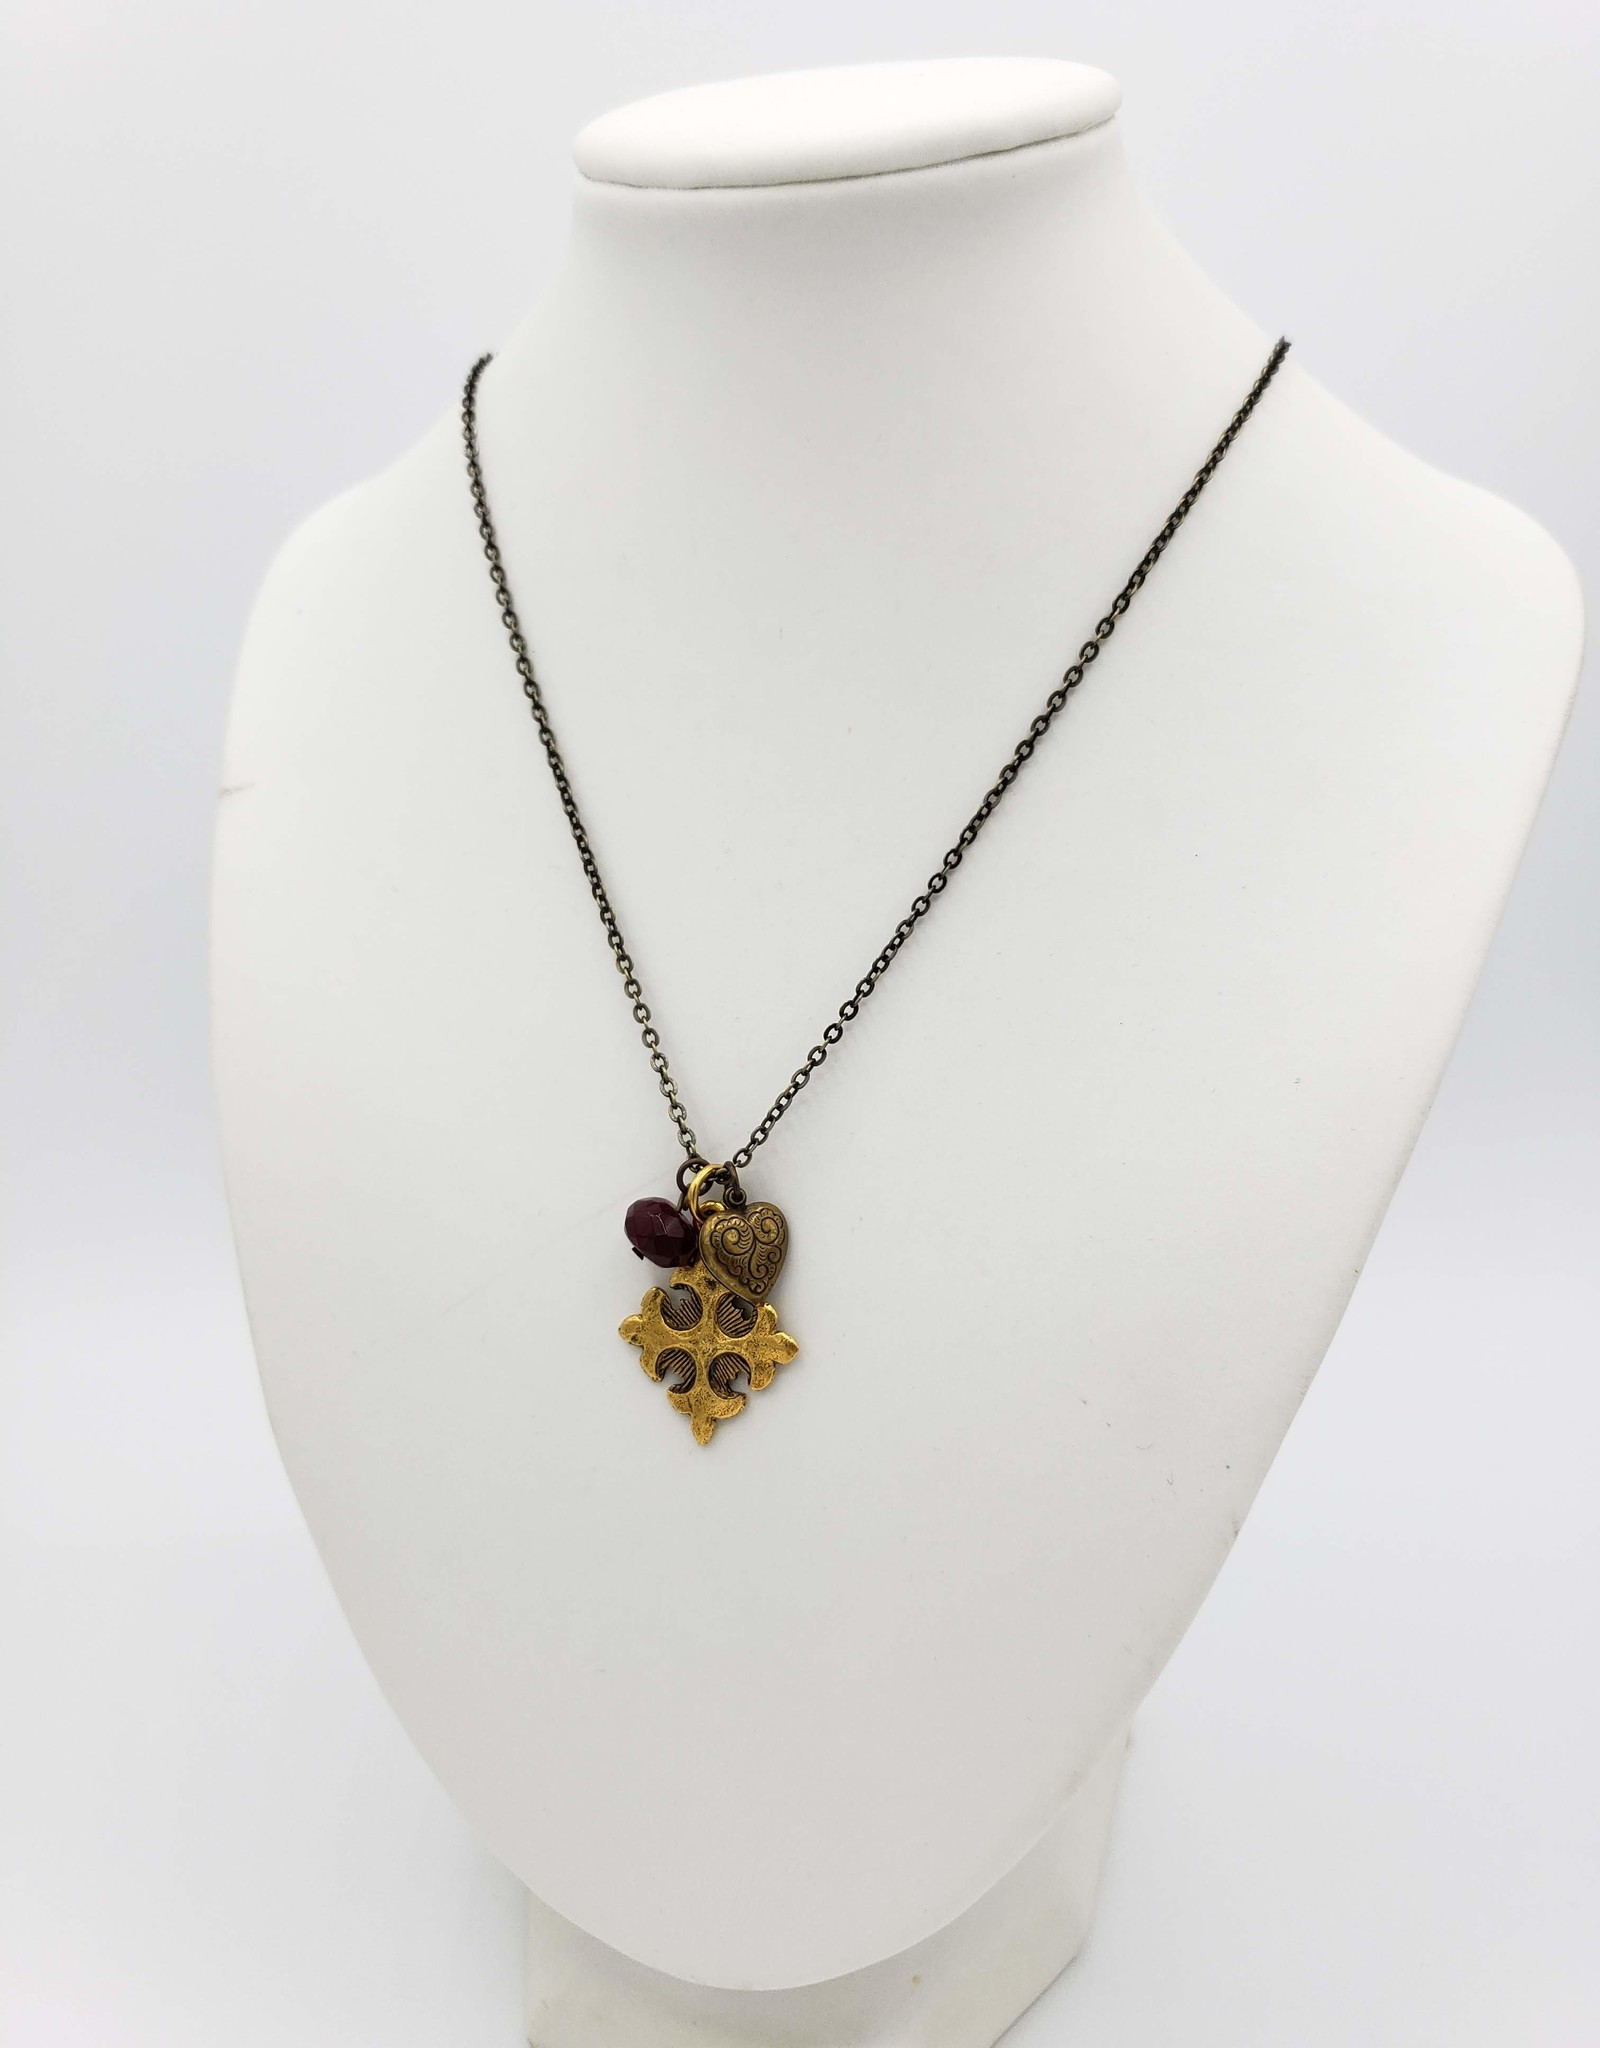 Redux Assemblage Necklace with a Heart, Cross and Red Faceted Glass Charms